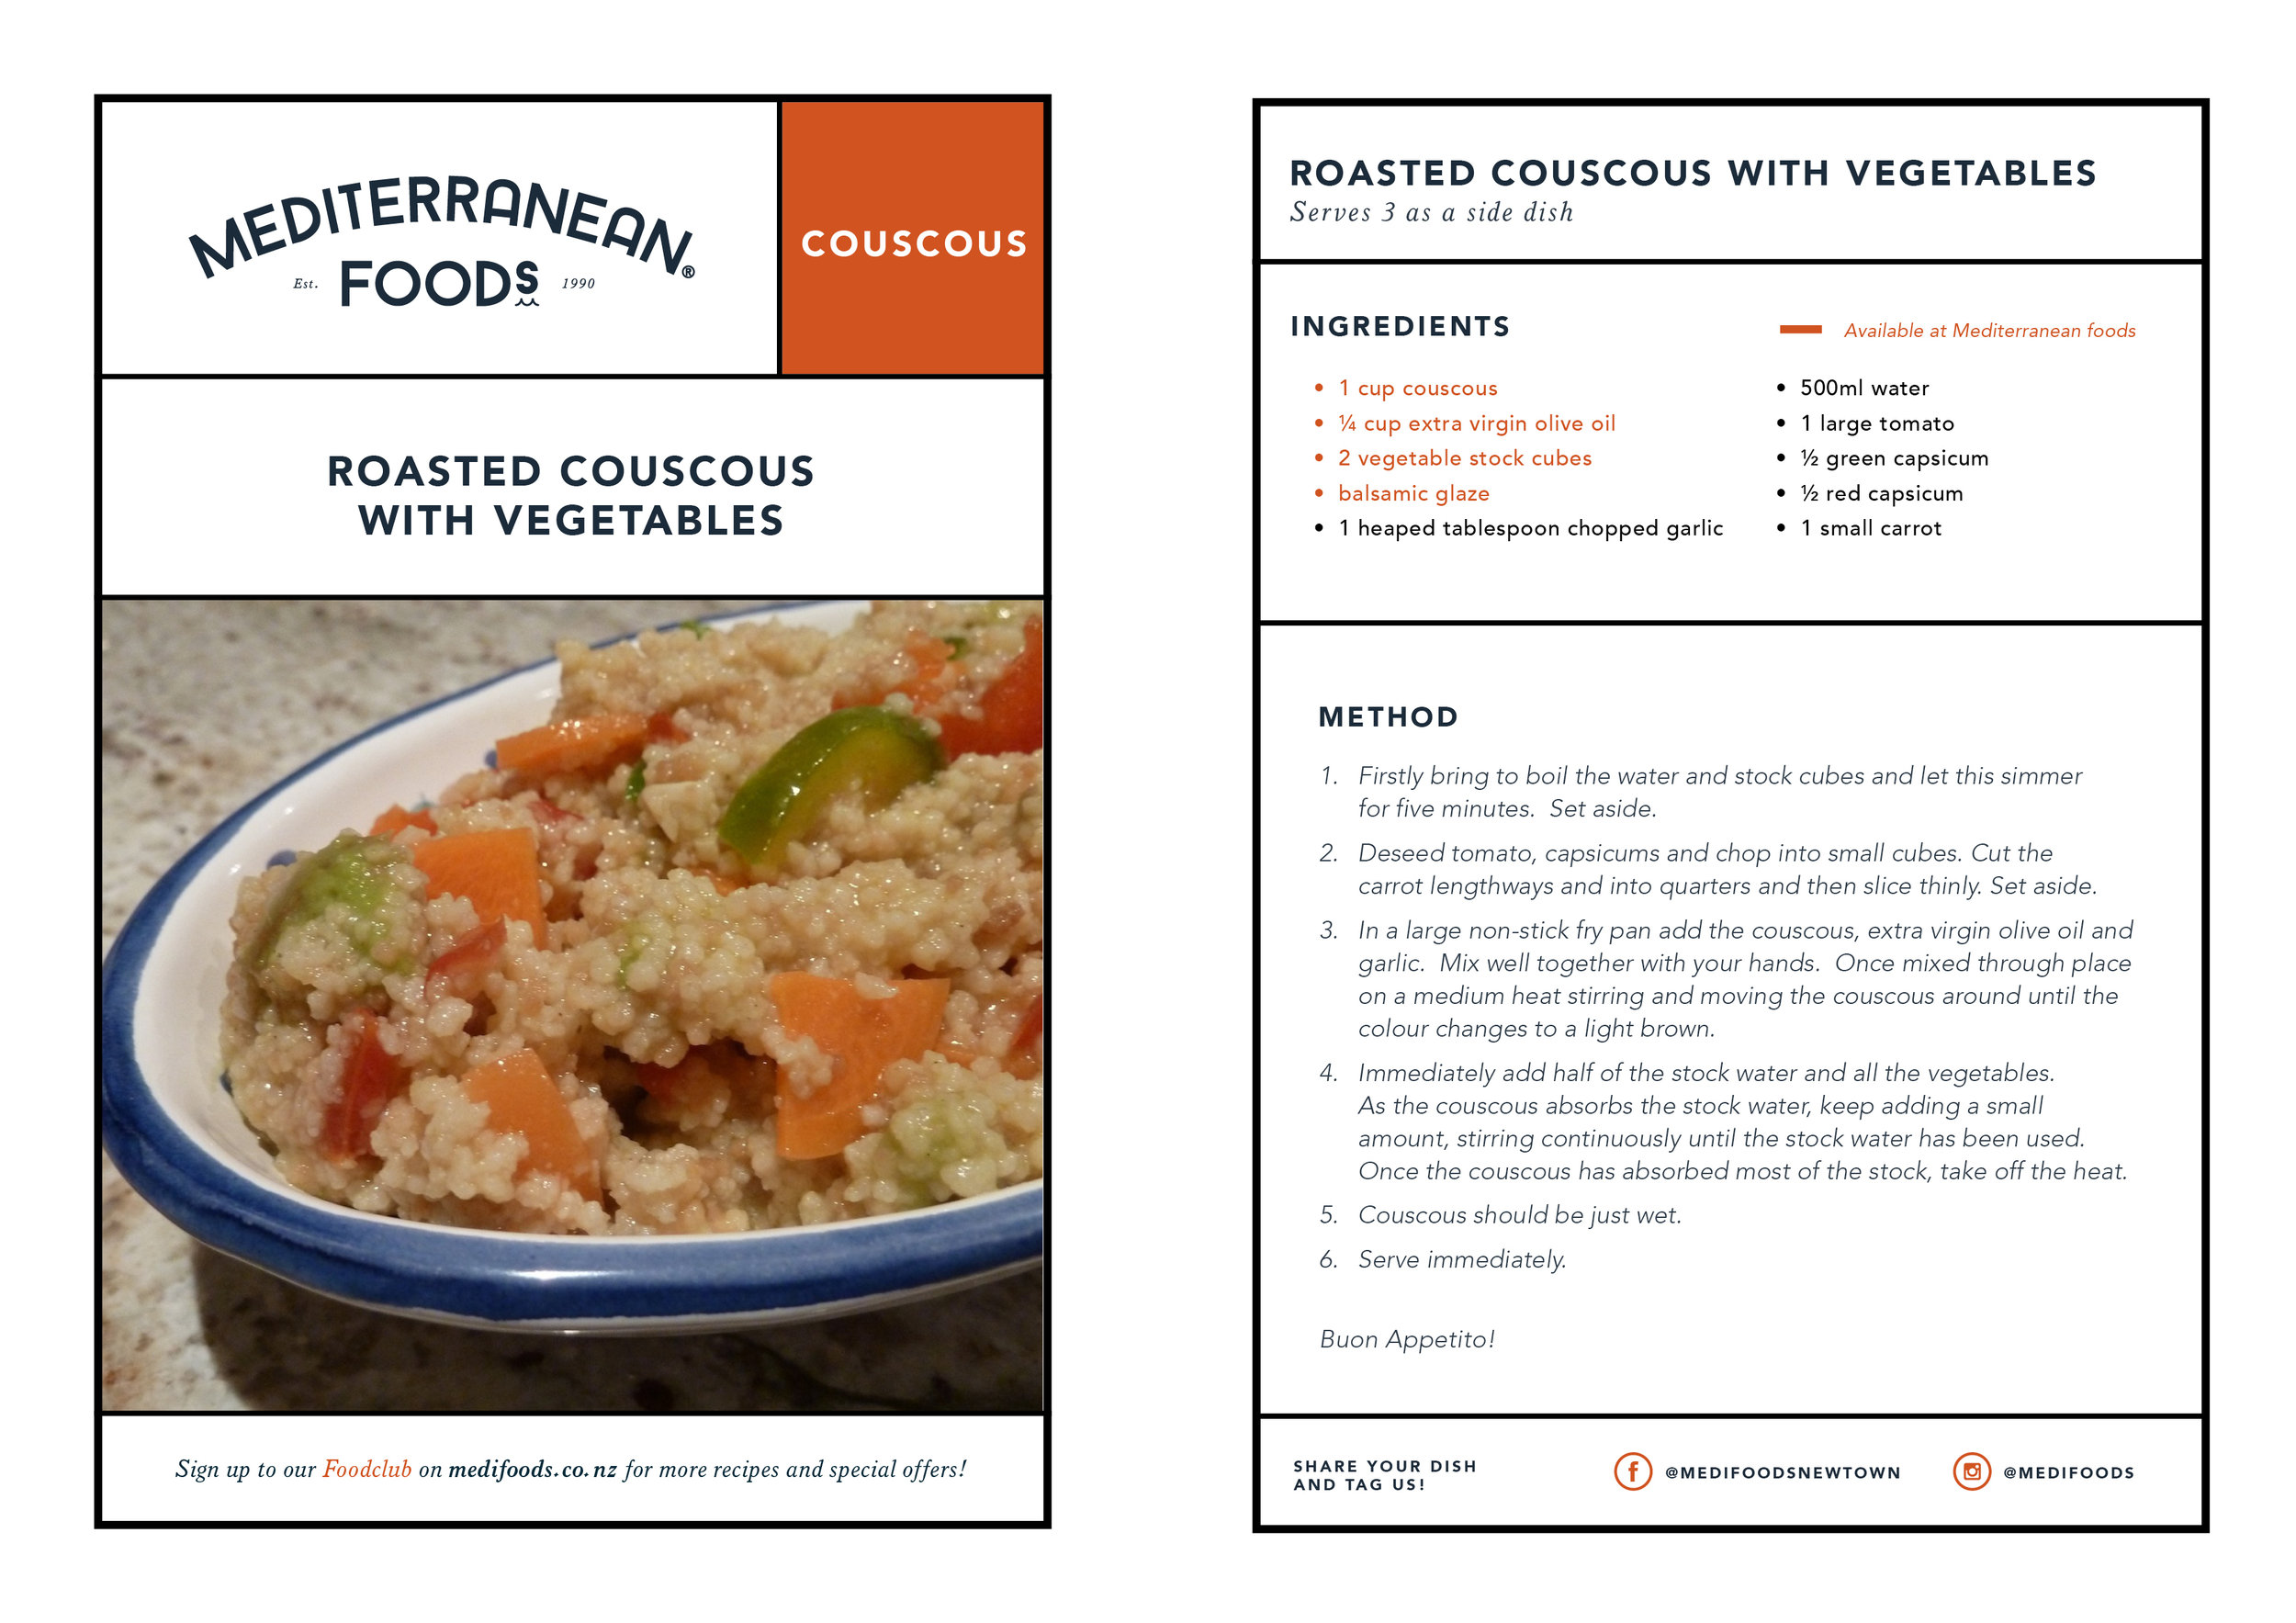 Roasted couscous with vegetables.jpg